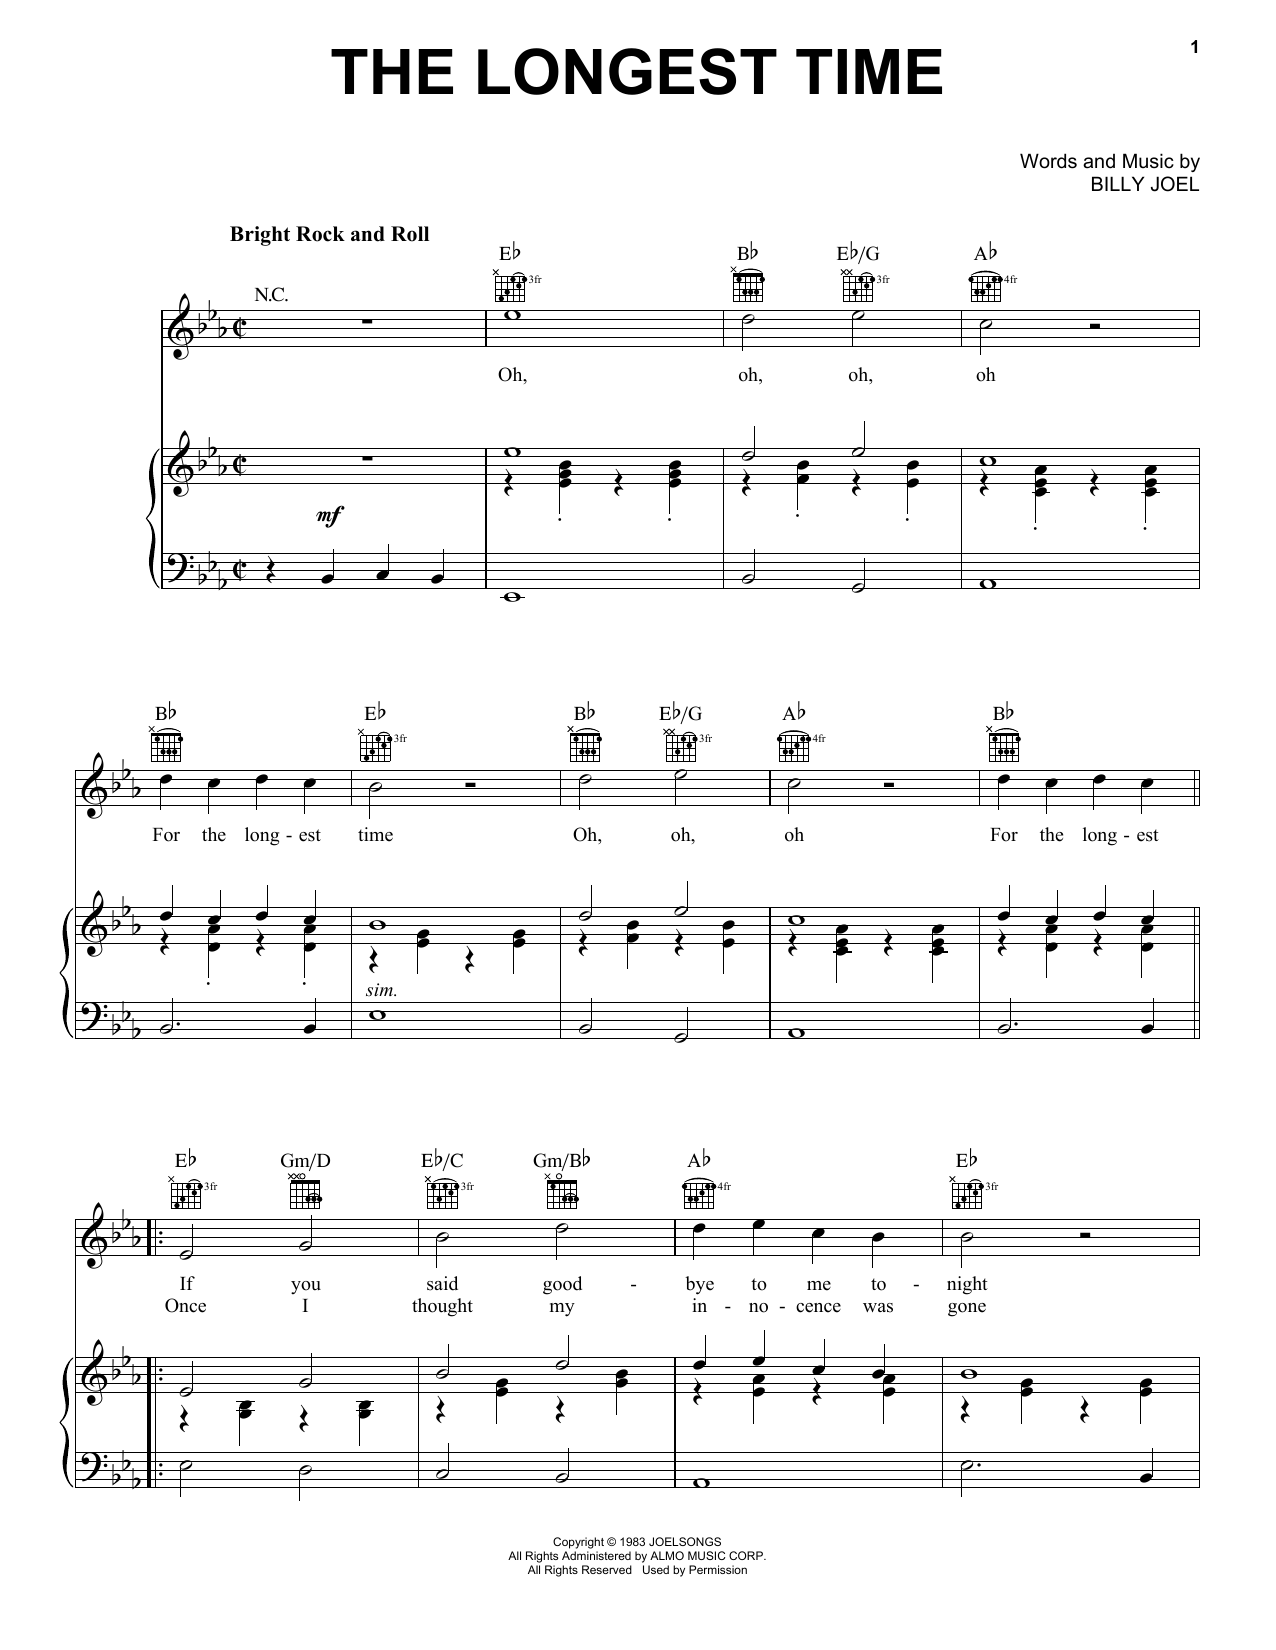 Sheet Music Digital Files To Print - Licensed Movin' Out